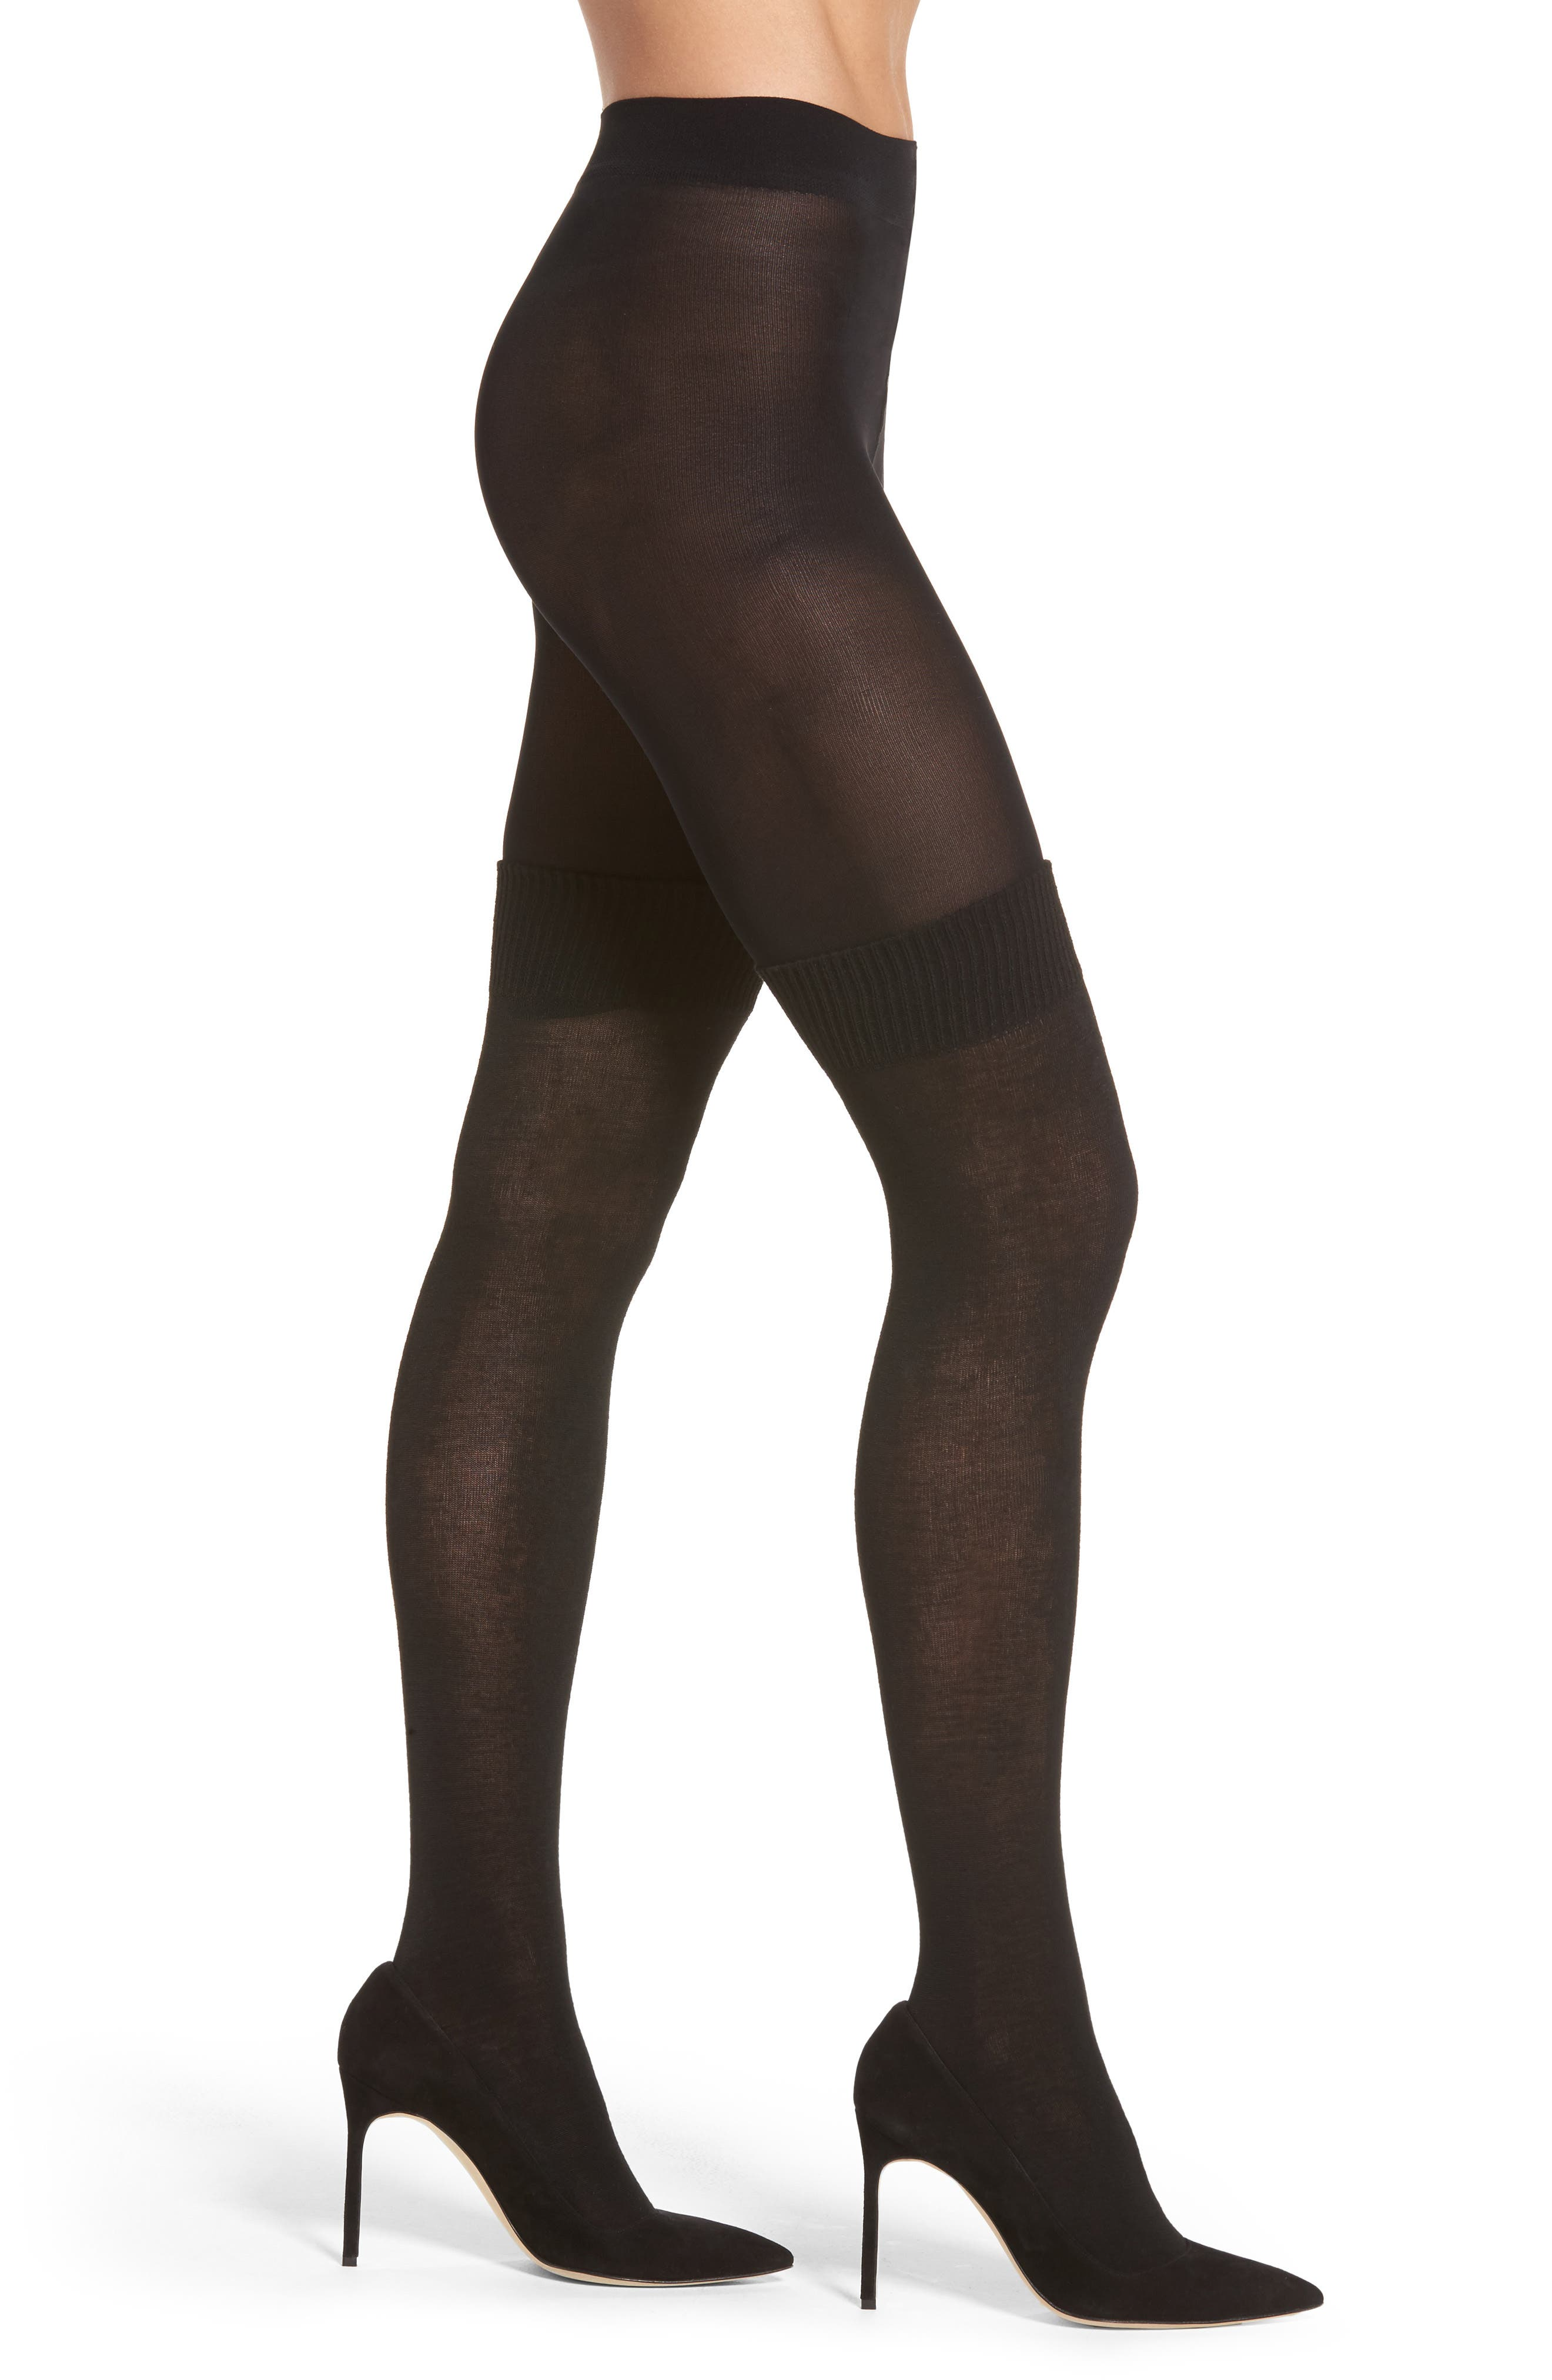 Alternate Image 1 Selected - Pretty Polly Secret Tights